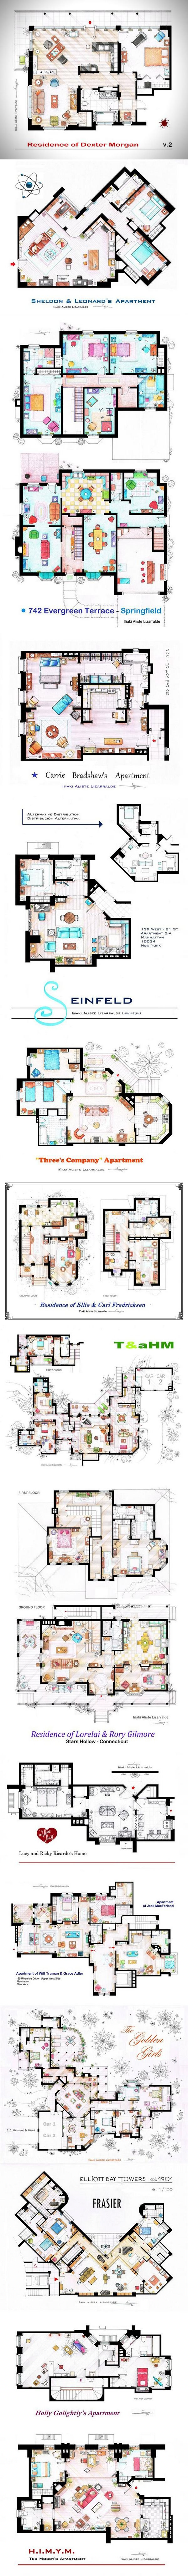 15 Famous TV Show Home Floor Plans. Now i wanna play Sims..